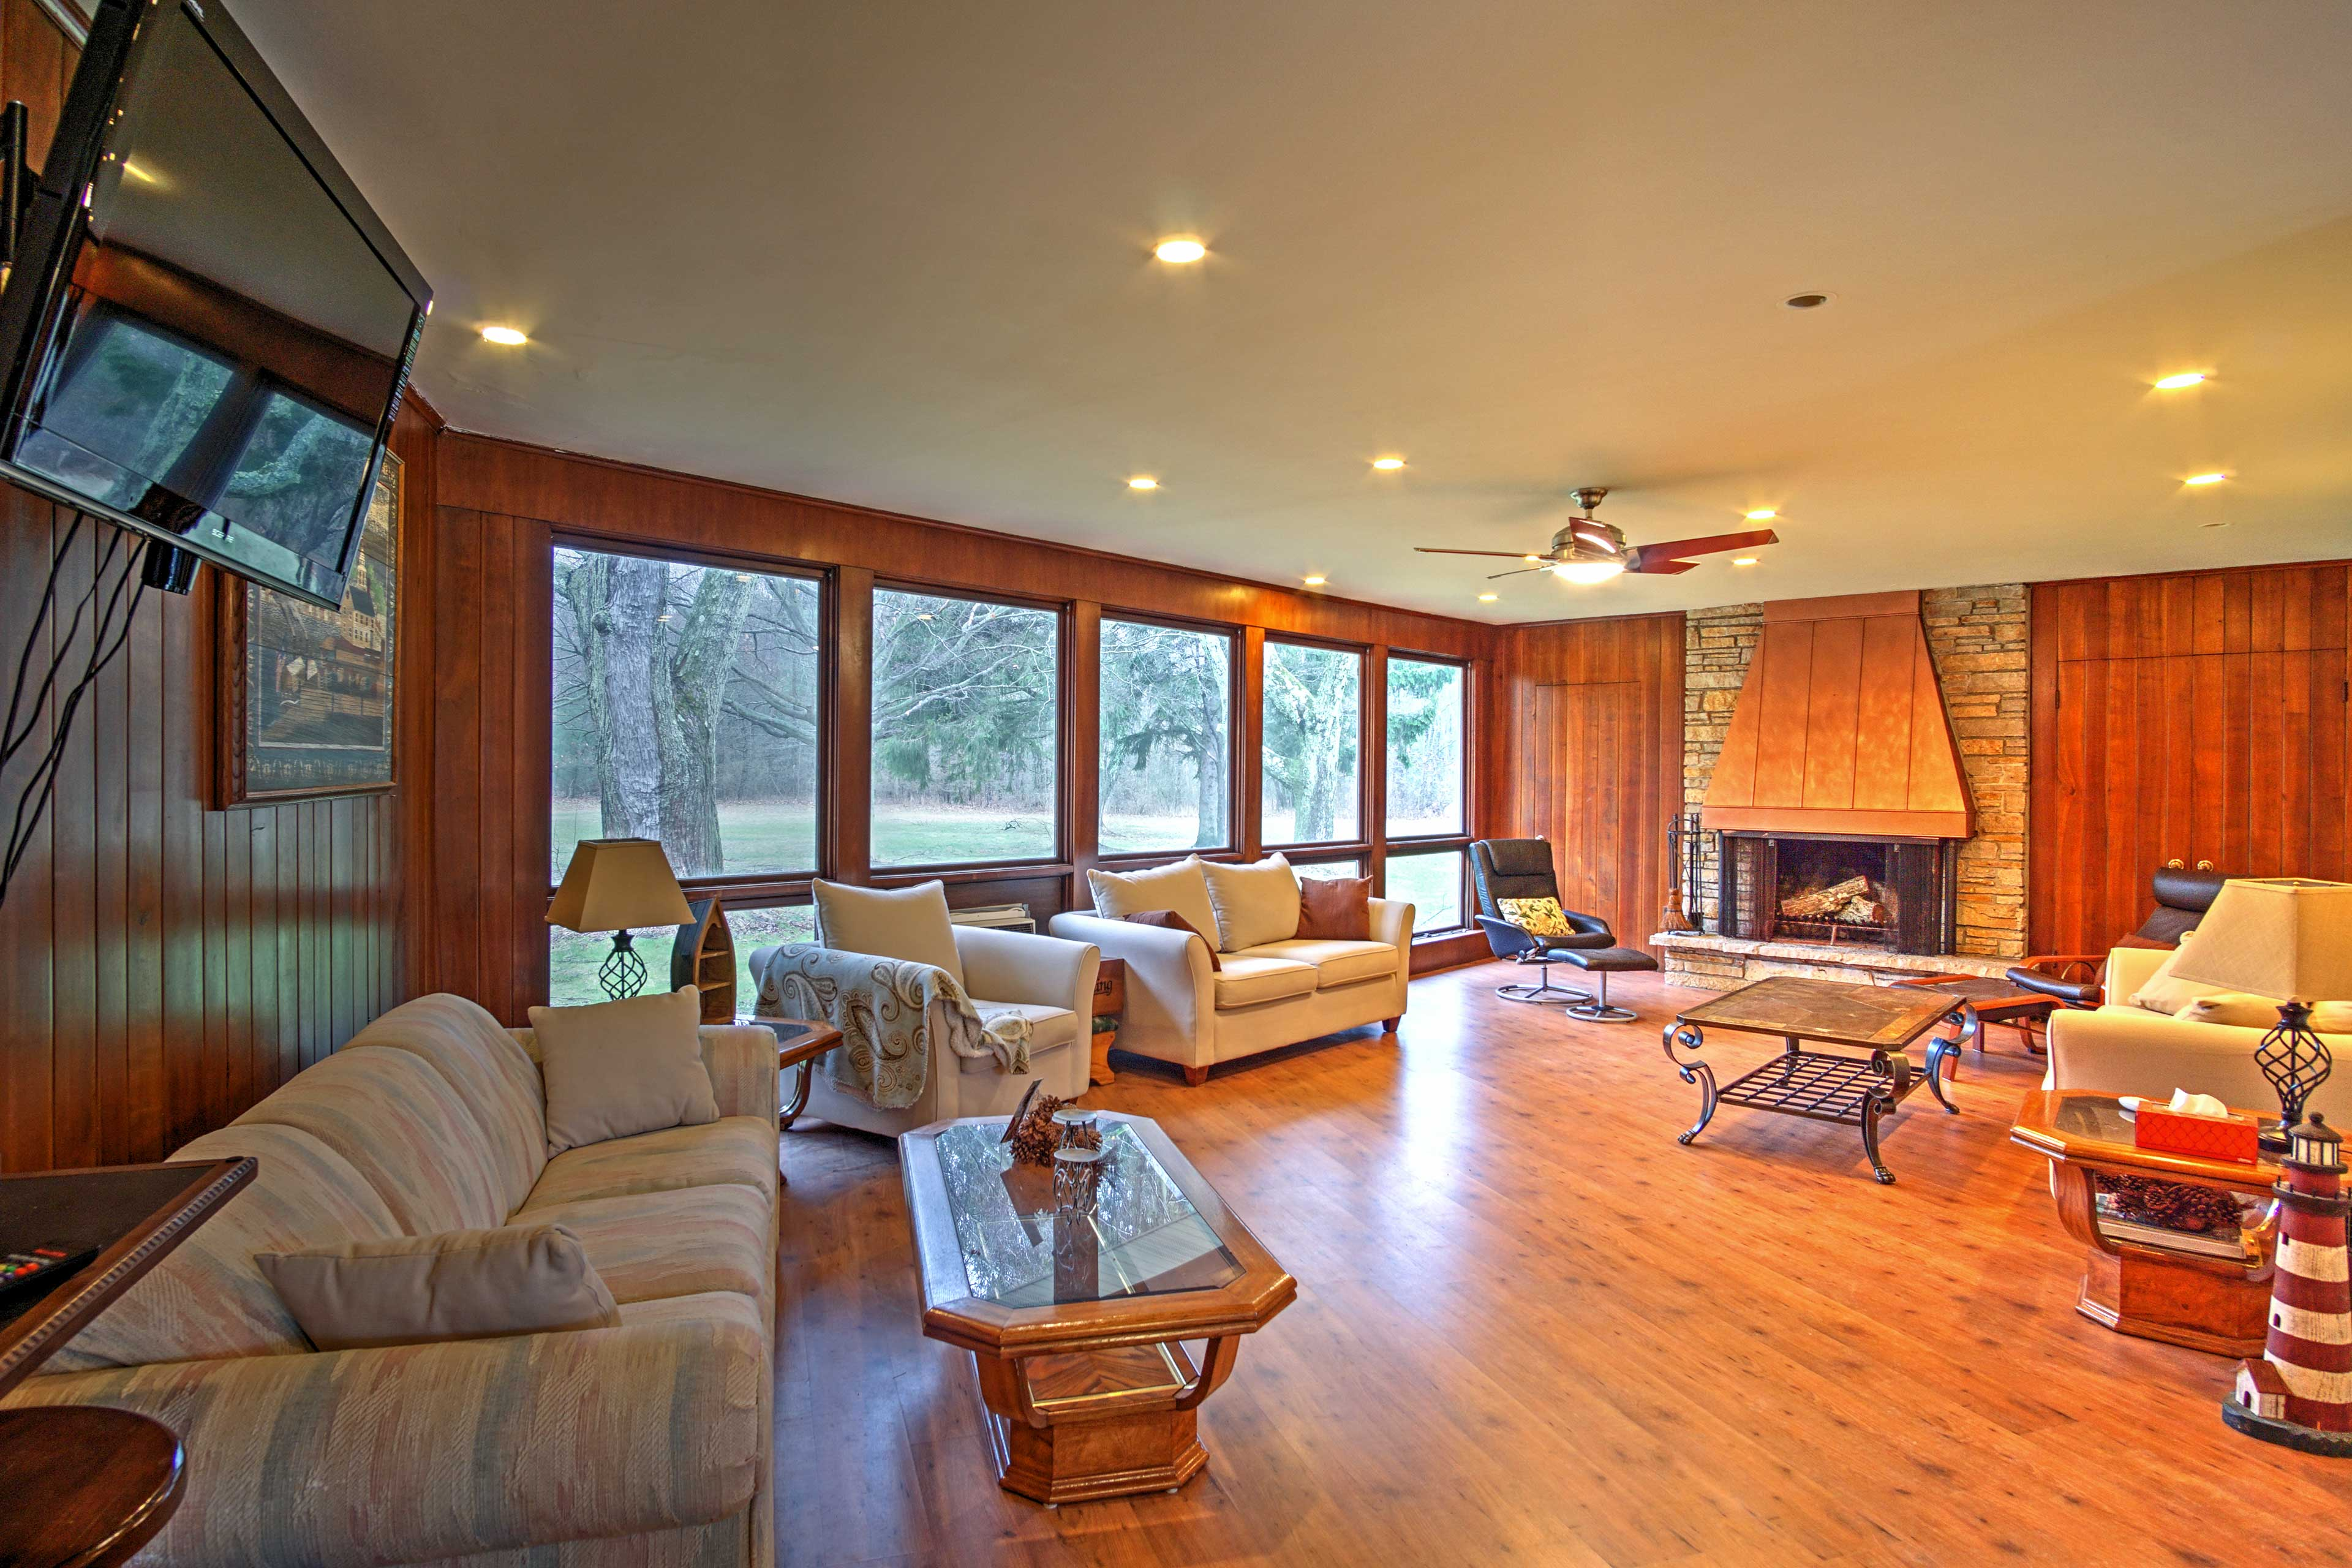 The home boasts 3,600 square feet of comfortable living space.